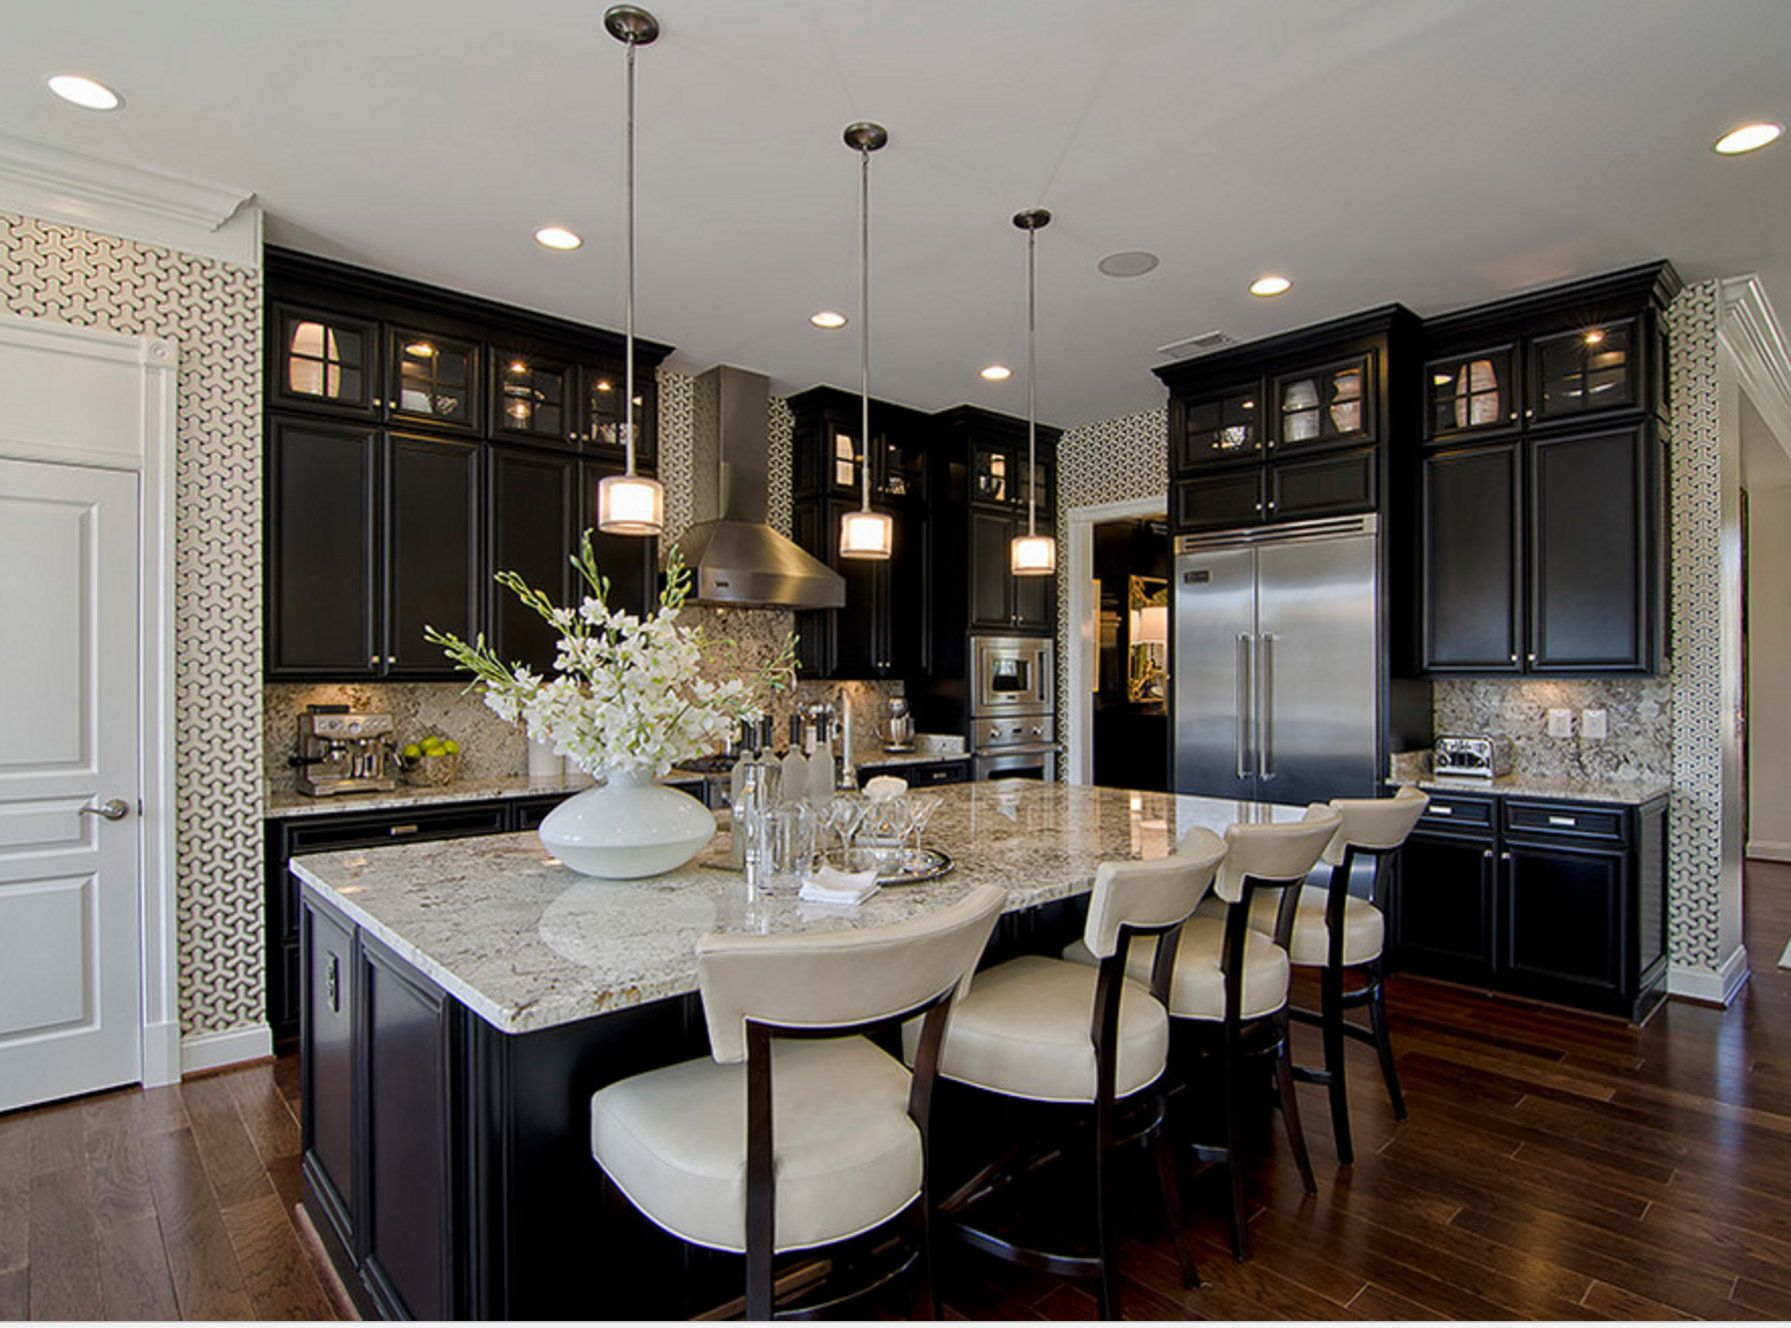 Best 25 Black kitchen decor ideas on Pinterest